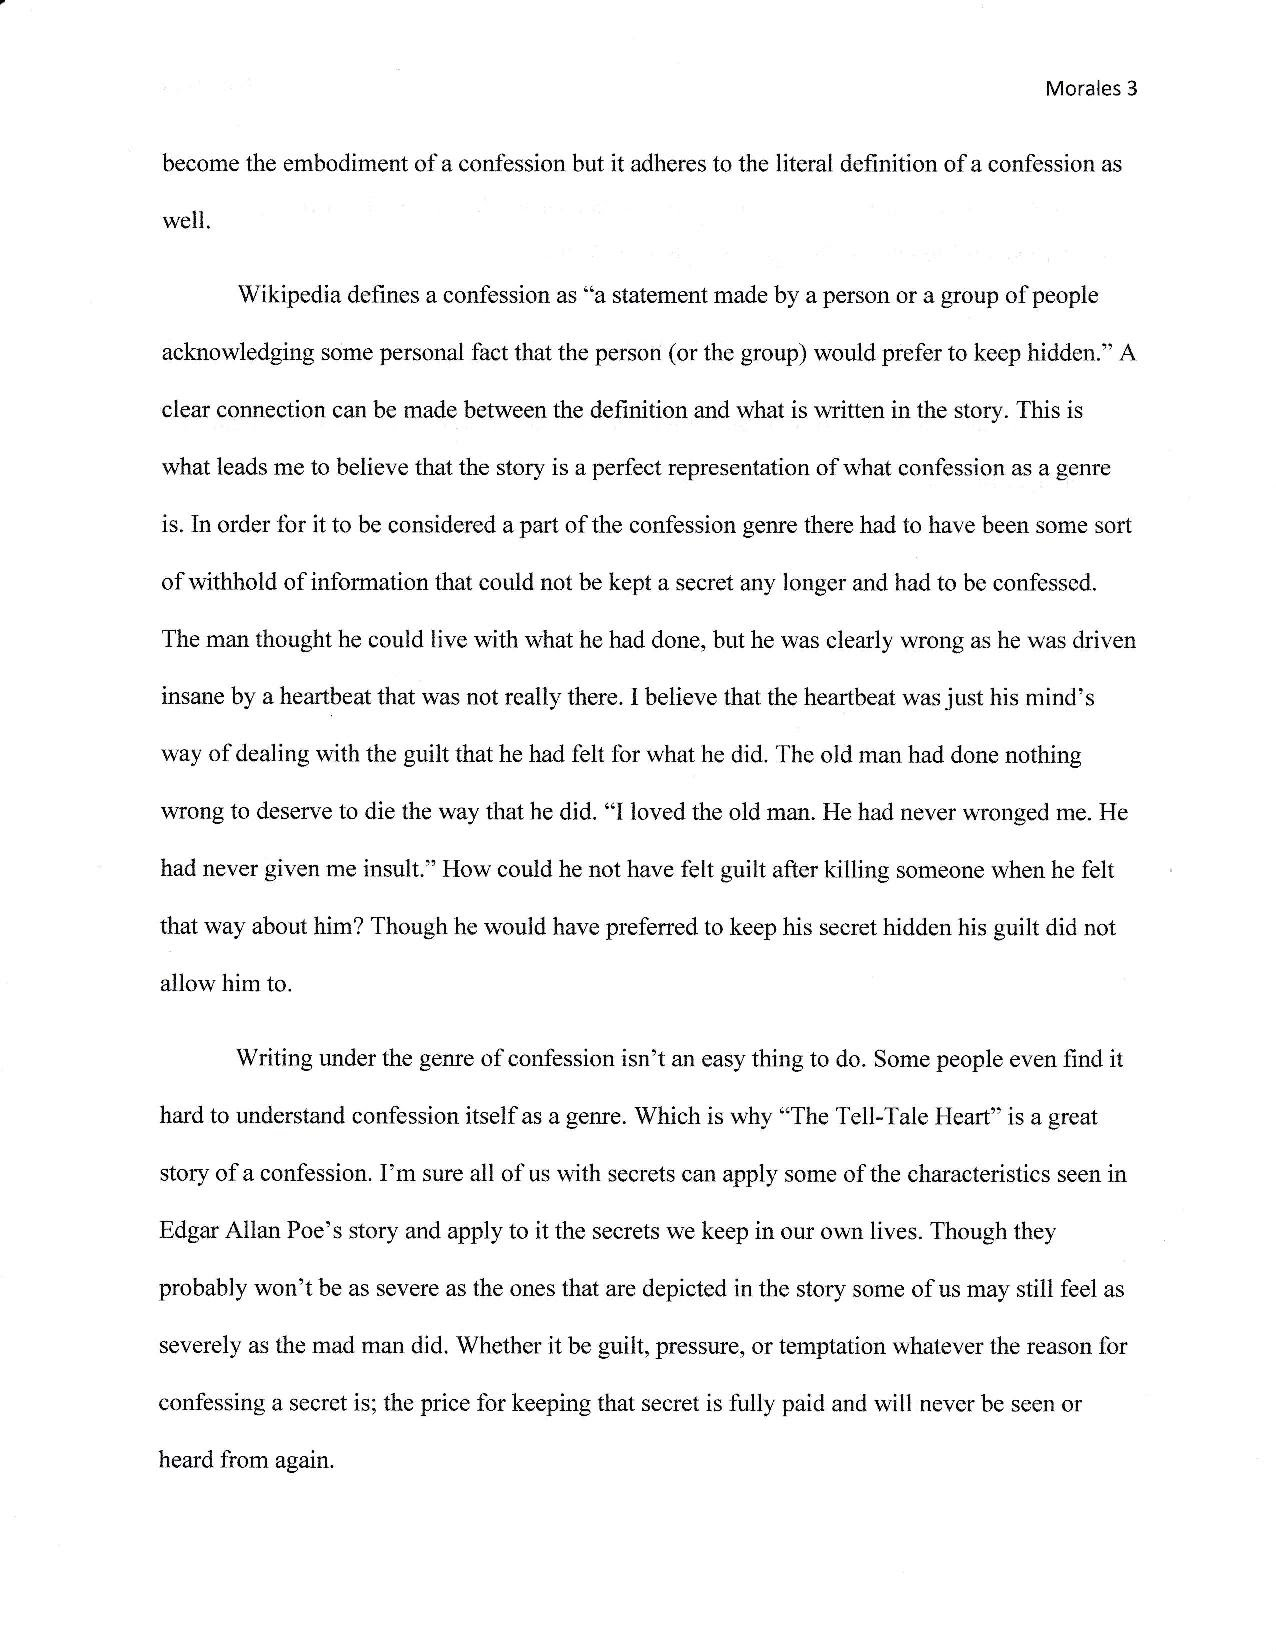 writing a rough draft for an essay lyric essay examples thematic  essay draft example of a rough draft of a essay paper essay critical reading essay draft